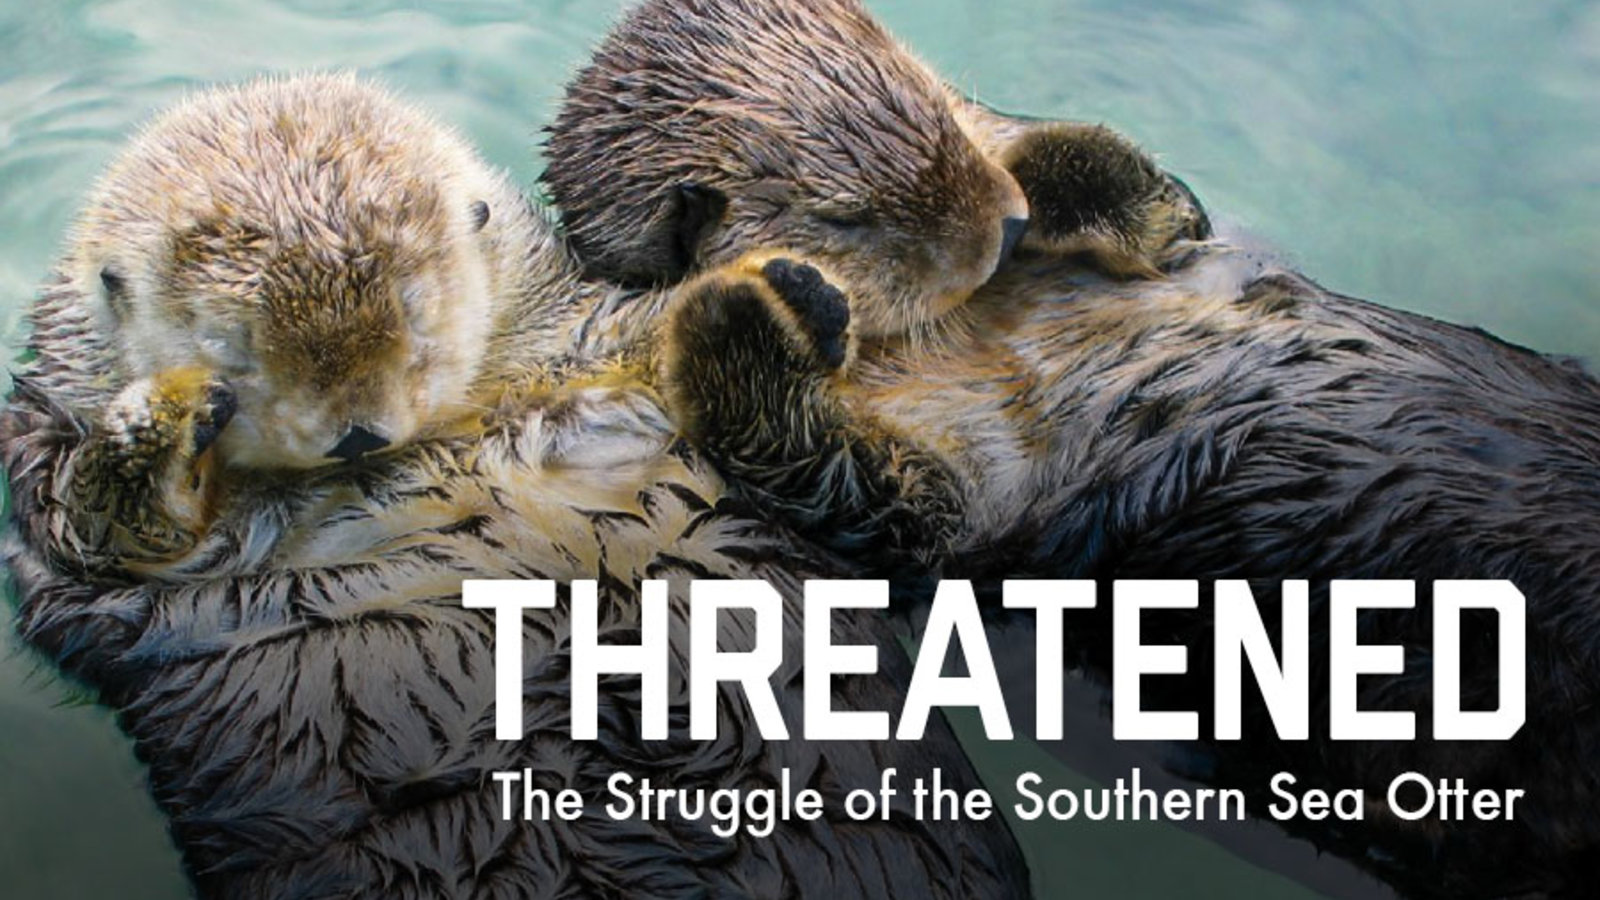 Threatened: The Struggle of the Southern Sea Otter